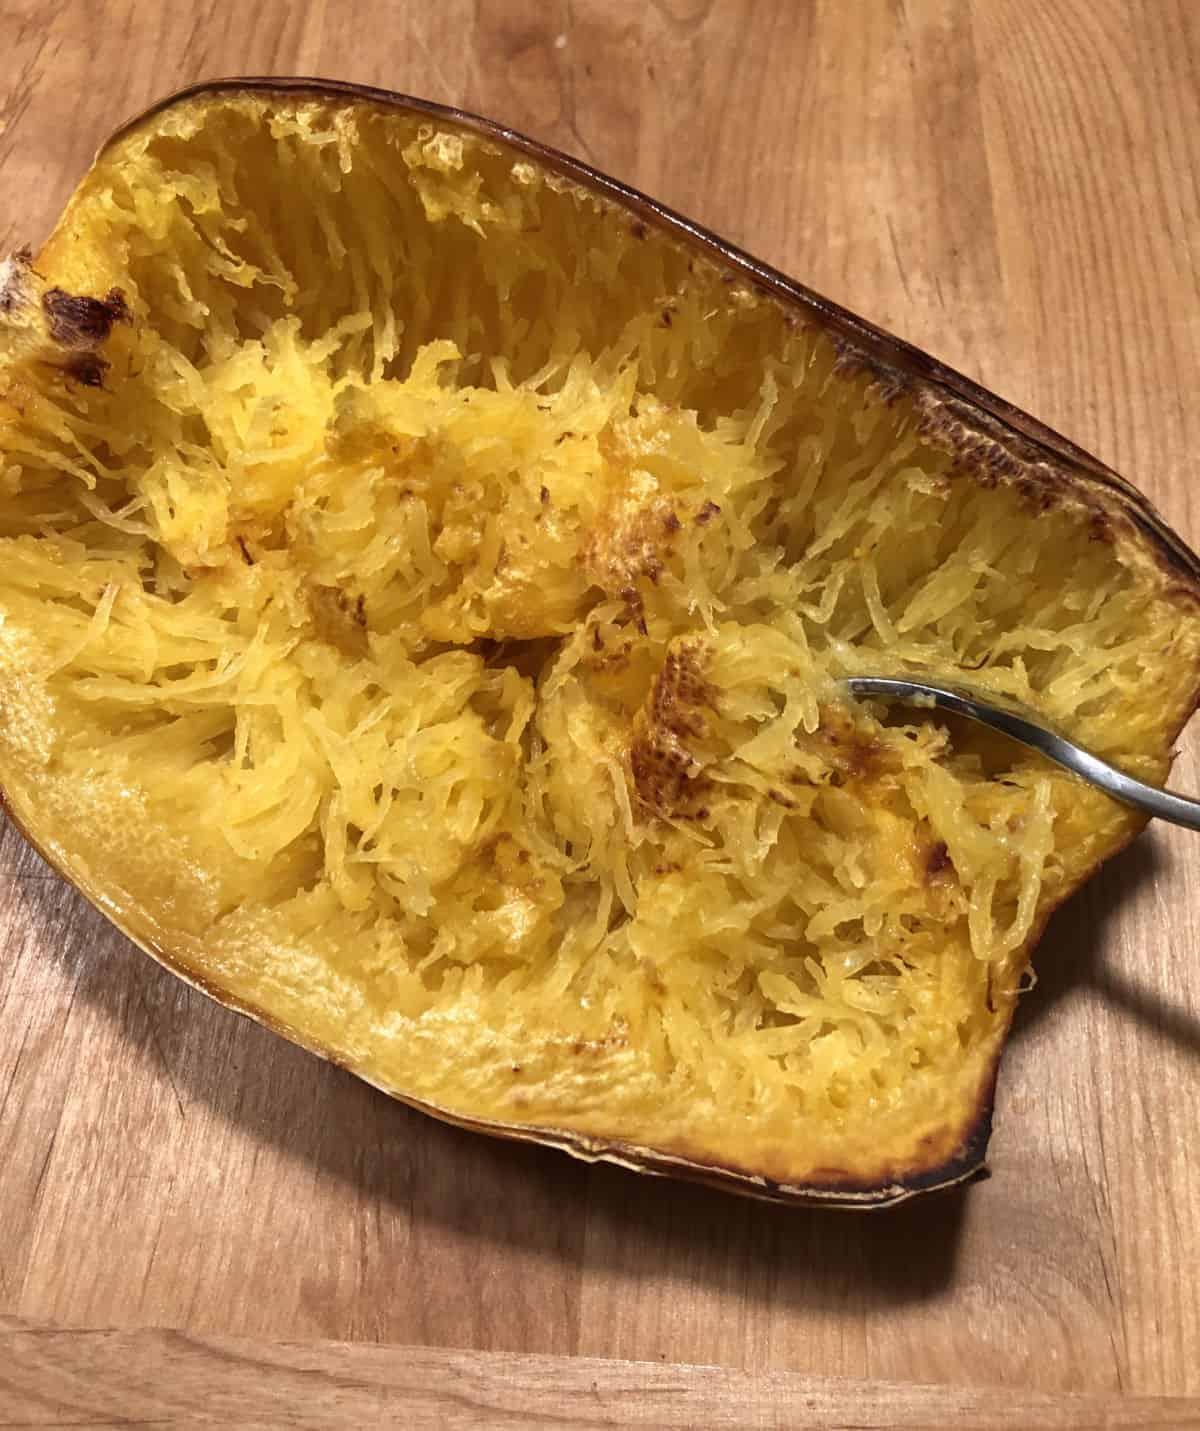 Roasted spaghetti squash with a fork